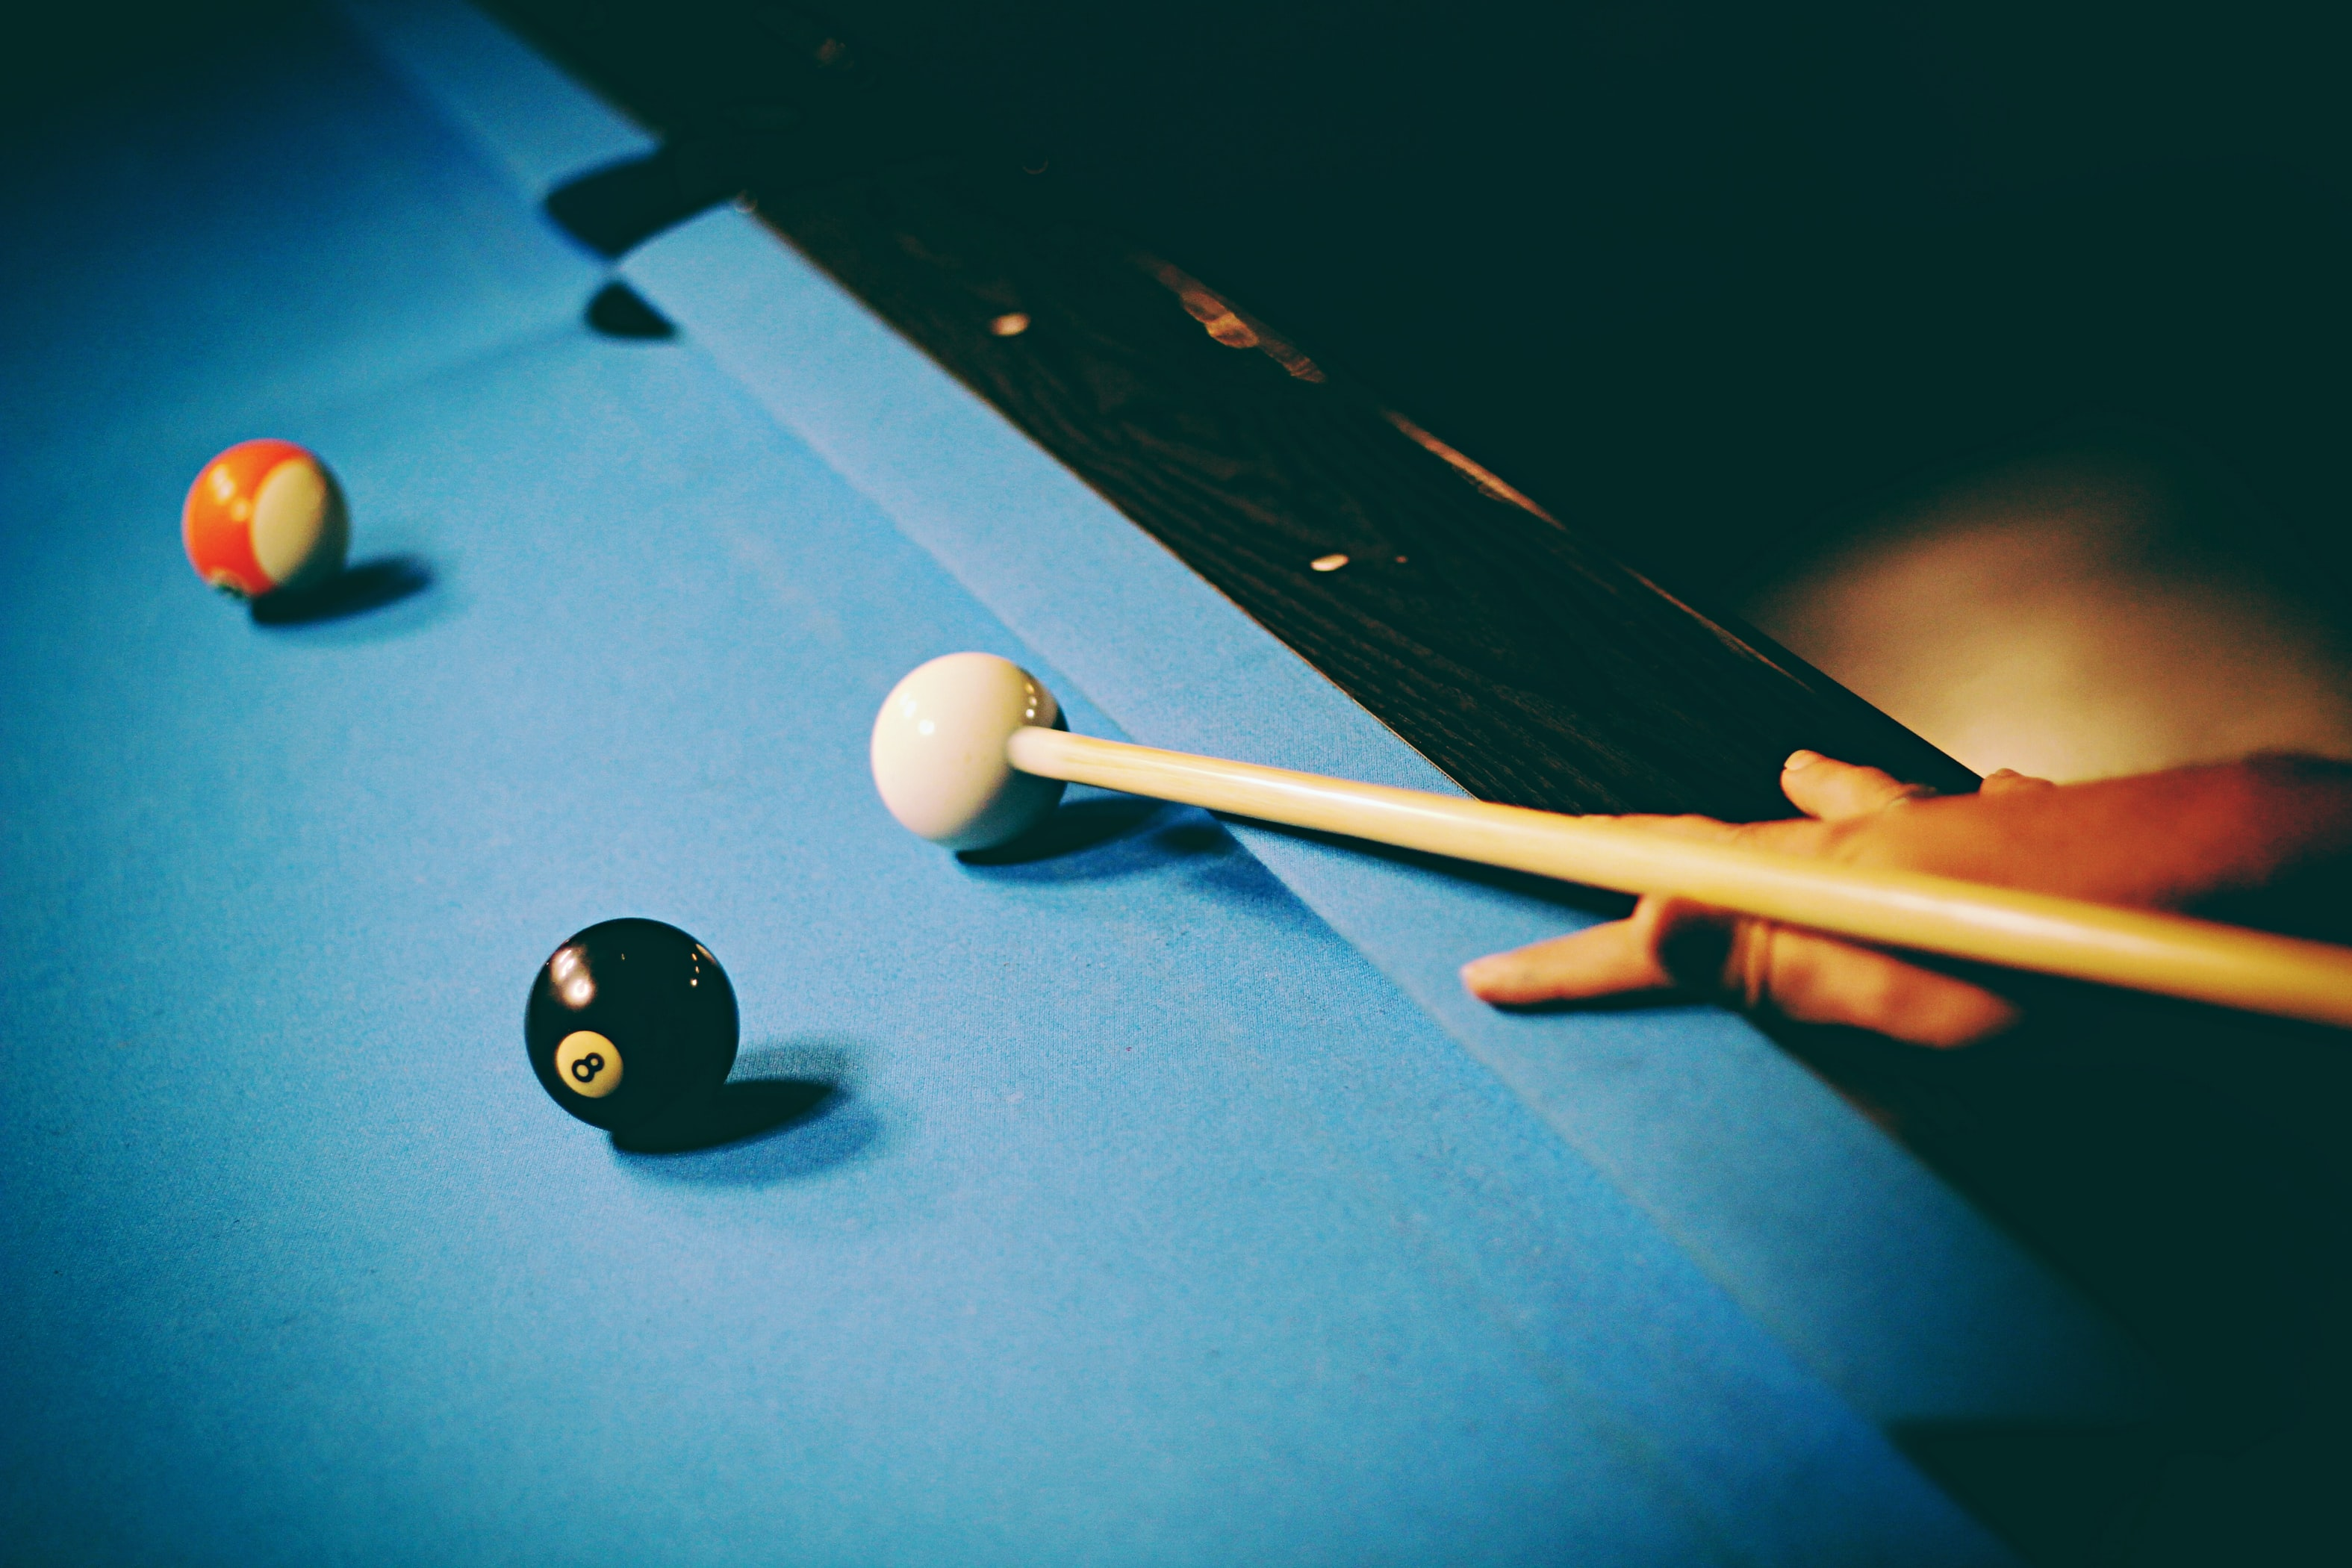 Vintage looking photo of person hitting white ball on pool table